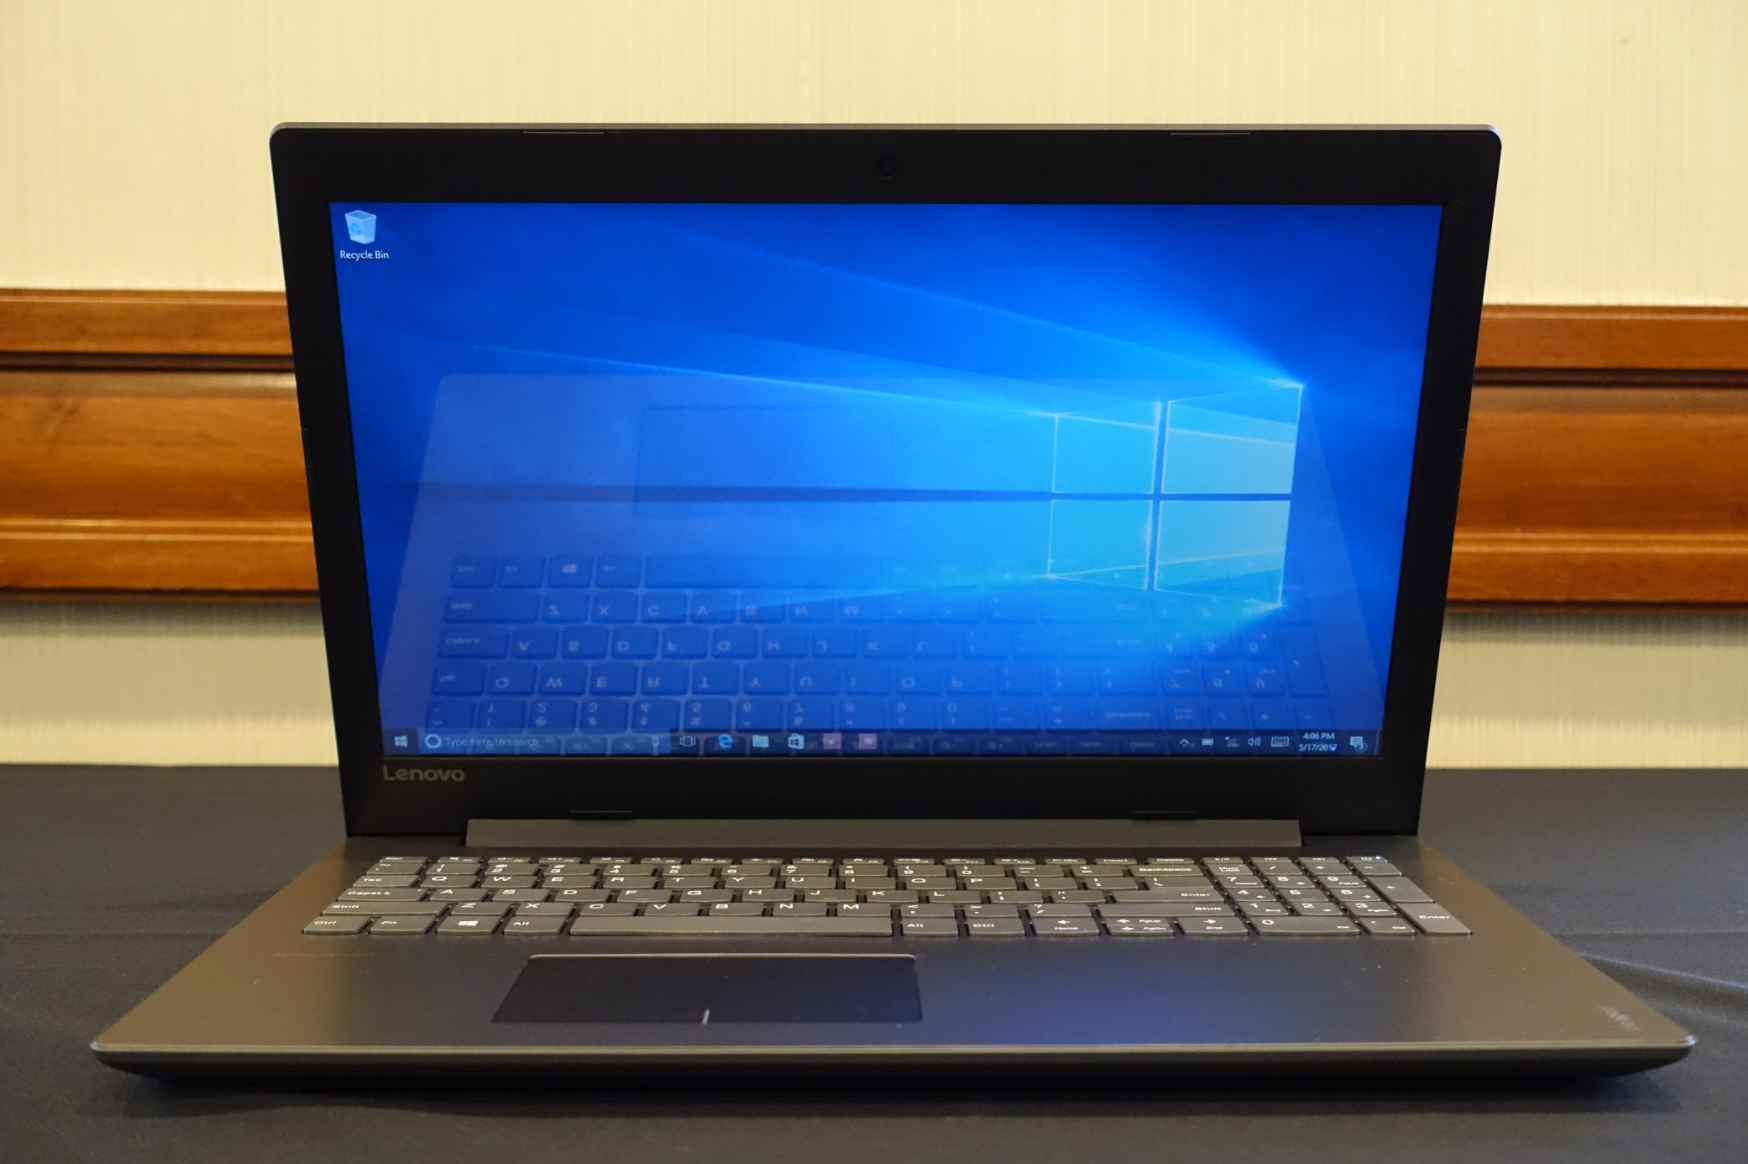 Hands On with the Completely Redesigned Lenovo IdeaPad